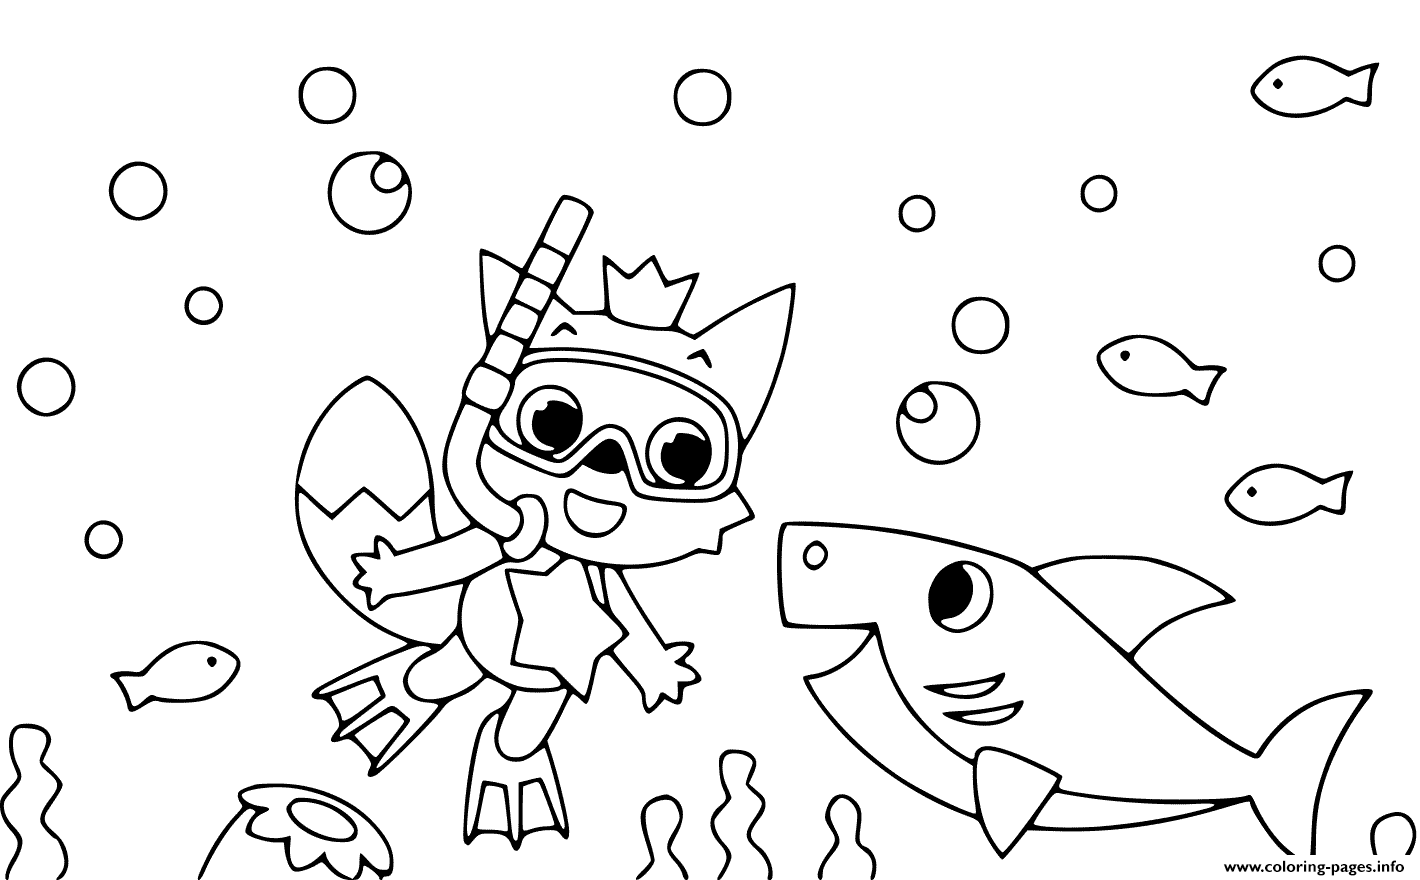 Baby Shark Coloring Page in 2020 | Shark coloring pages, Coloring ... | 880x1420